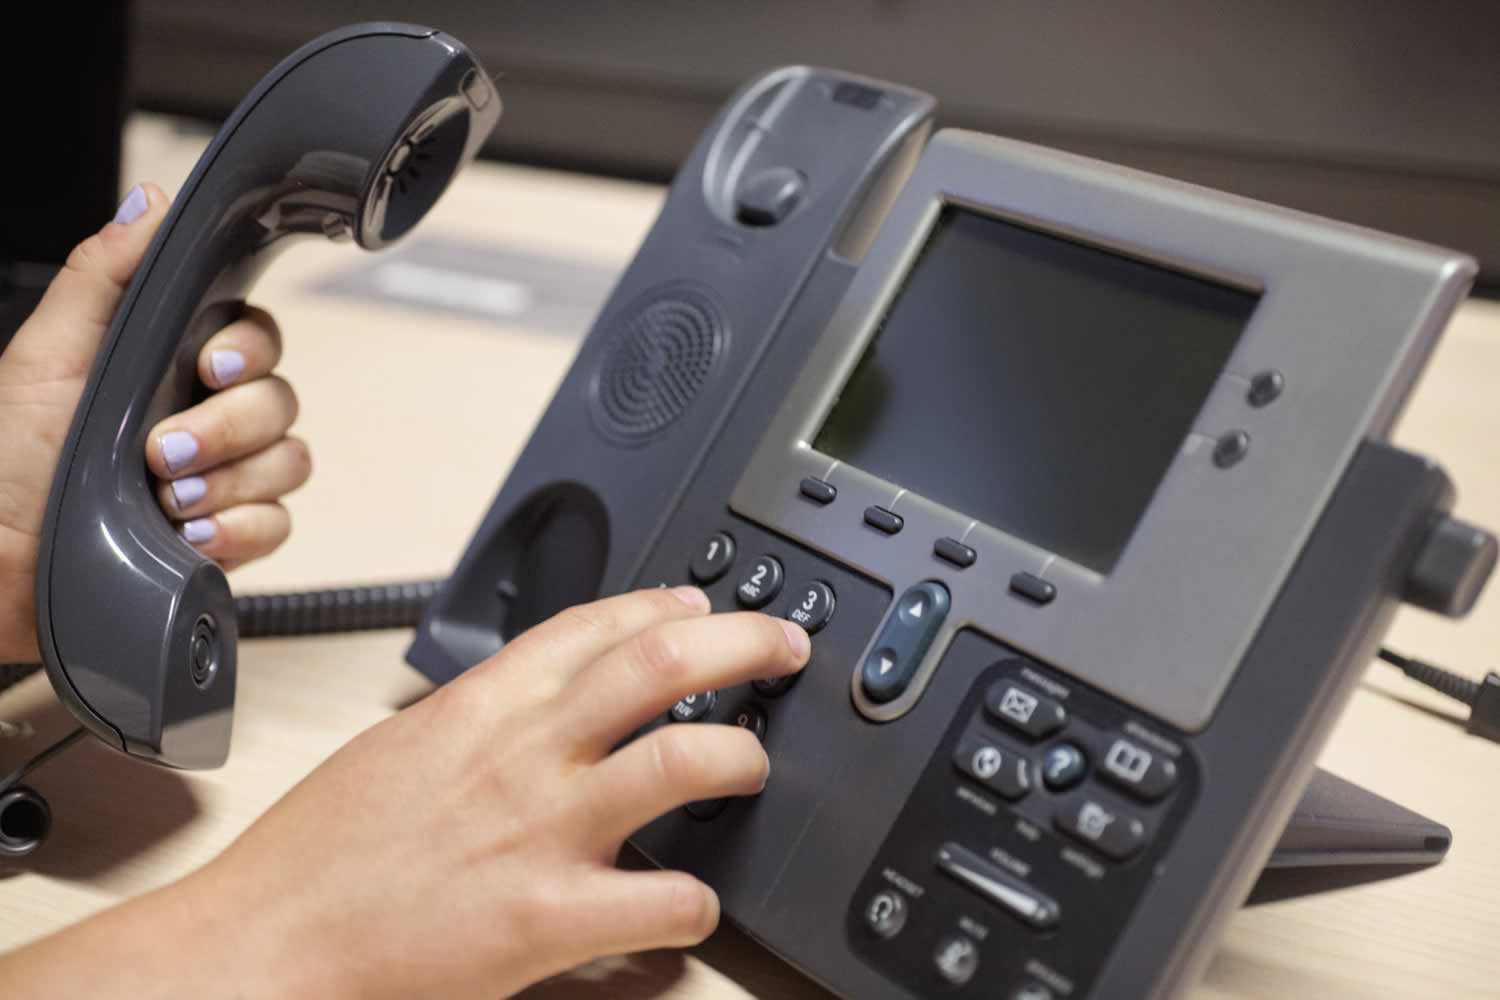 PBX Business Telephony Systems in Dubai